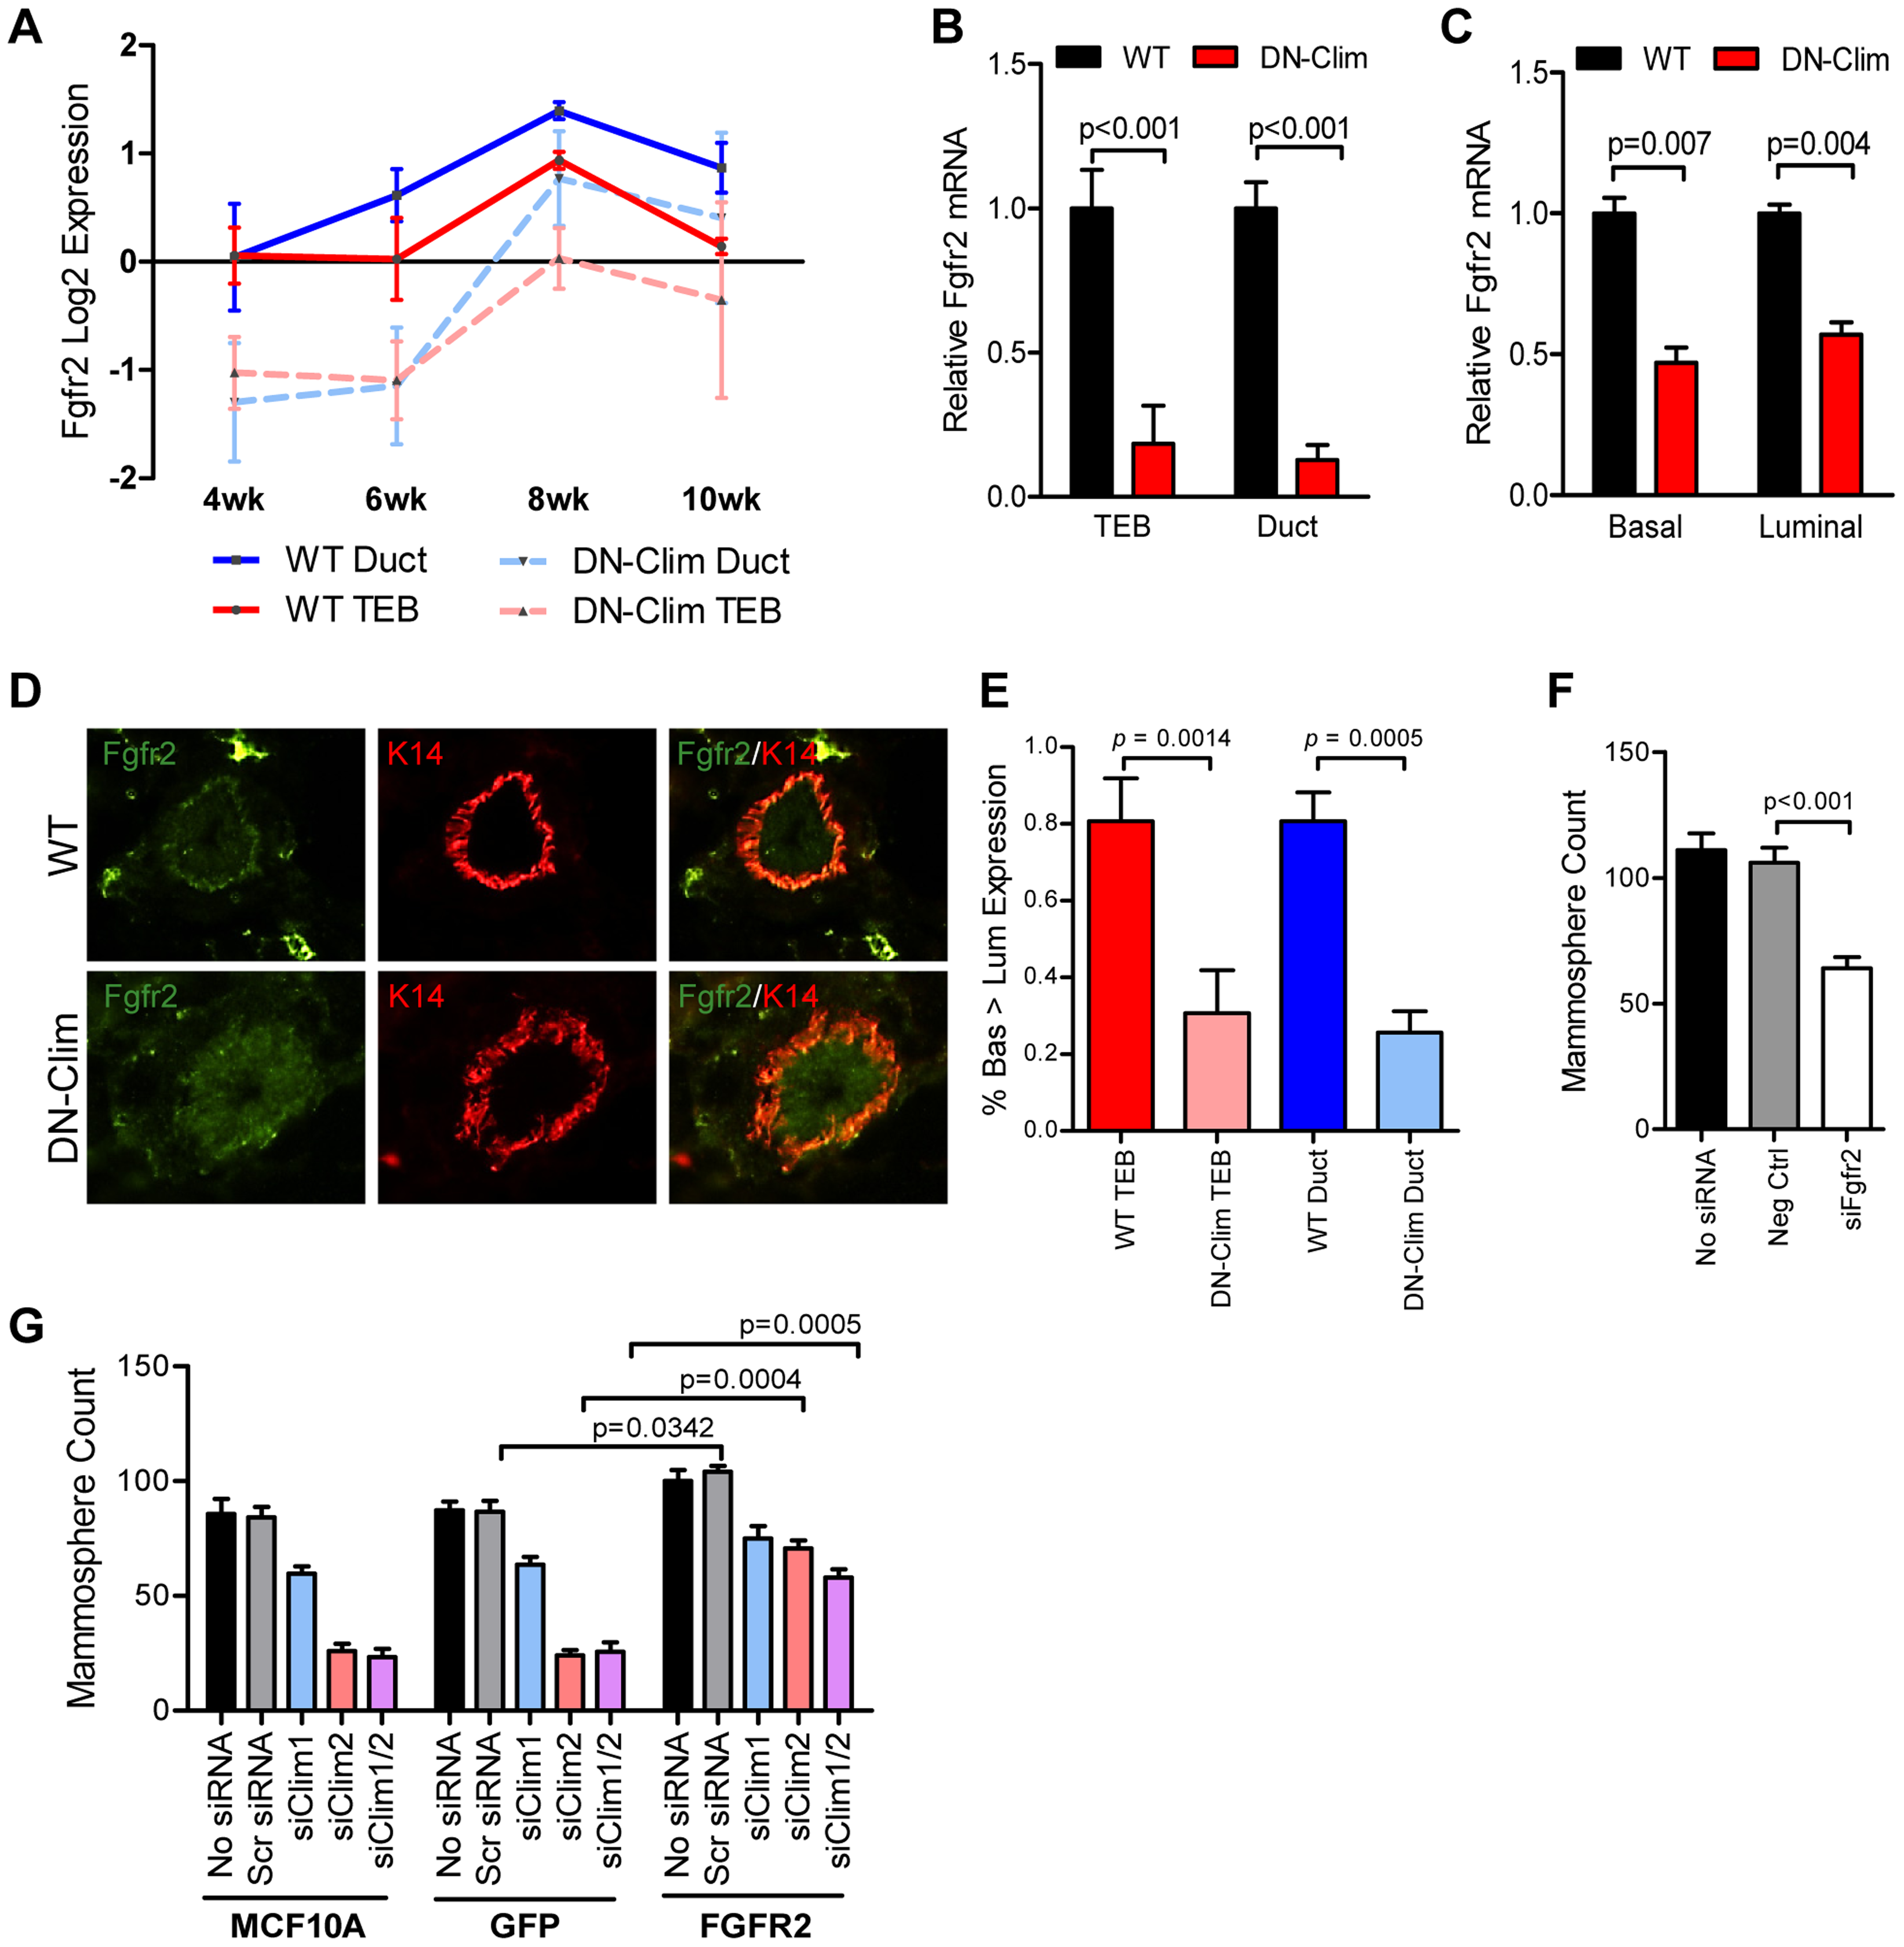 Fgfr2 downregulation in the mammary gland leads to loss of stem/progenitor cell activity.